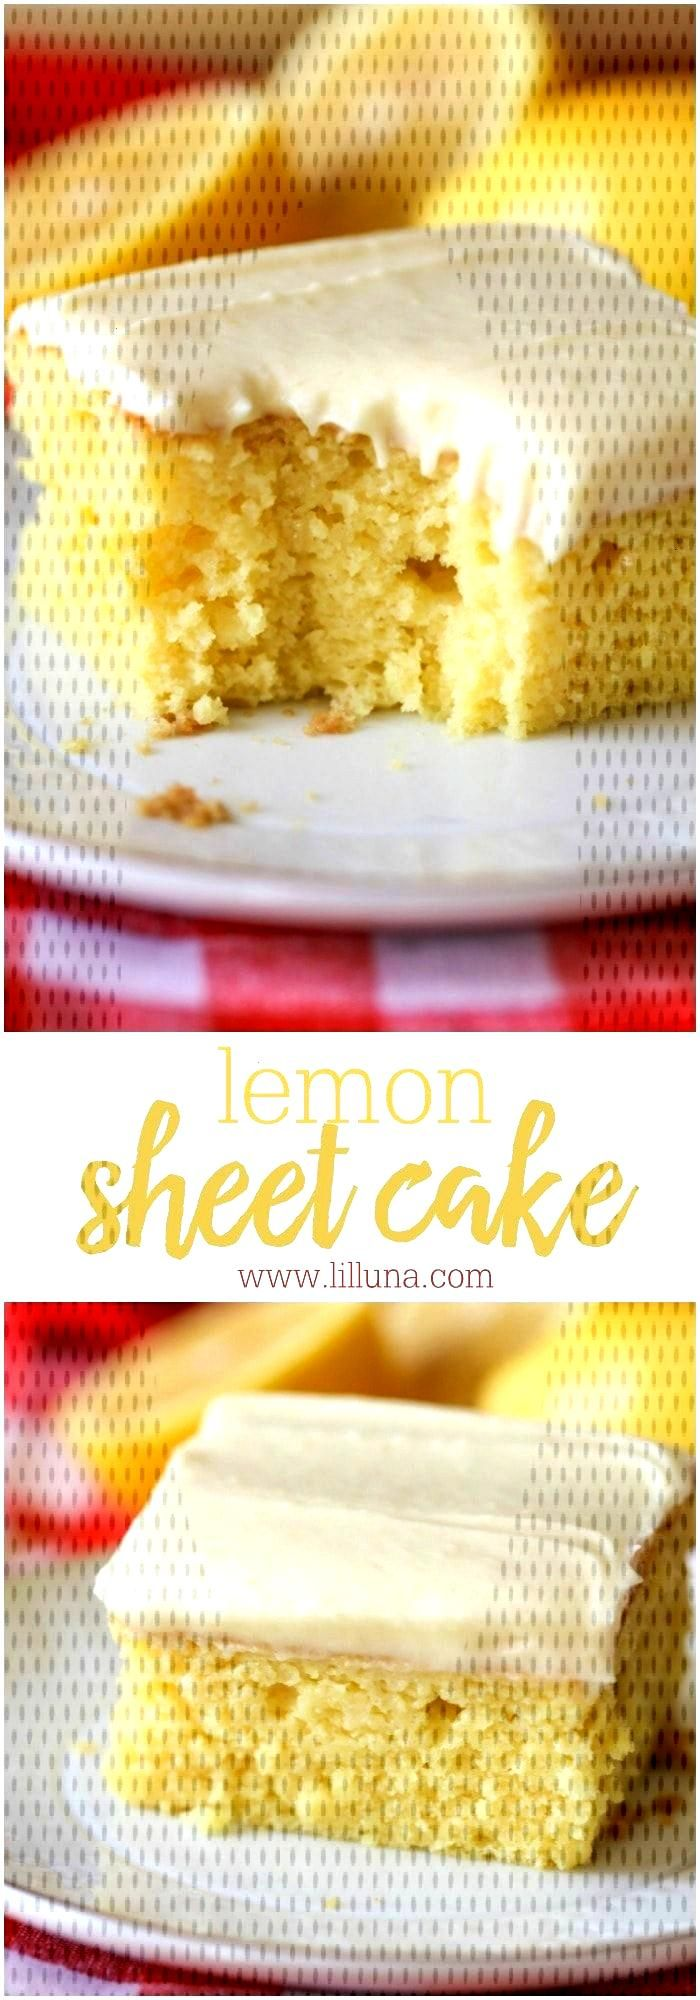 If youre looking for an easy lemon cake recipe, look no further! This super moist and delicious Le